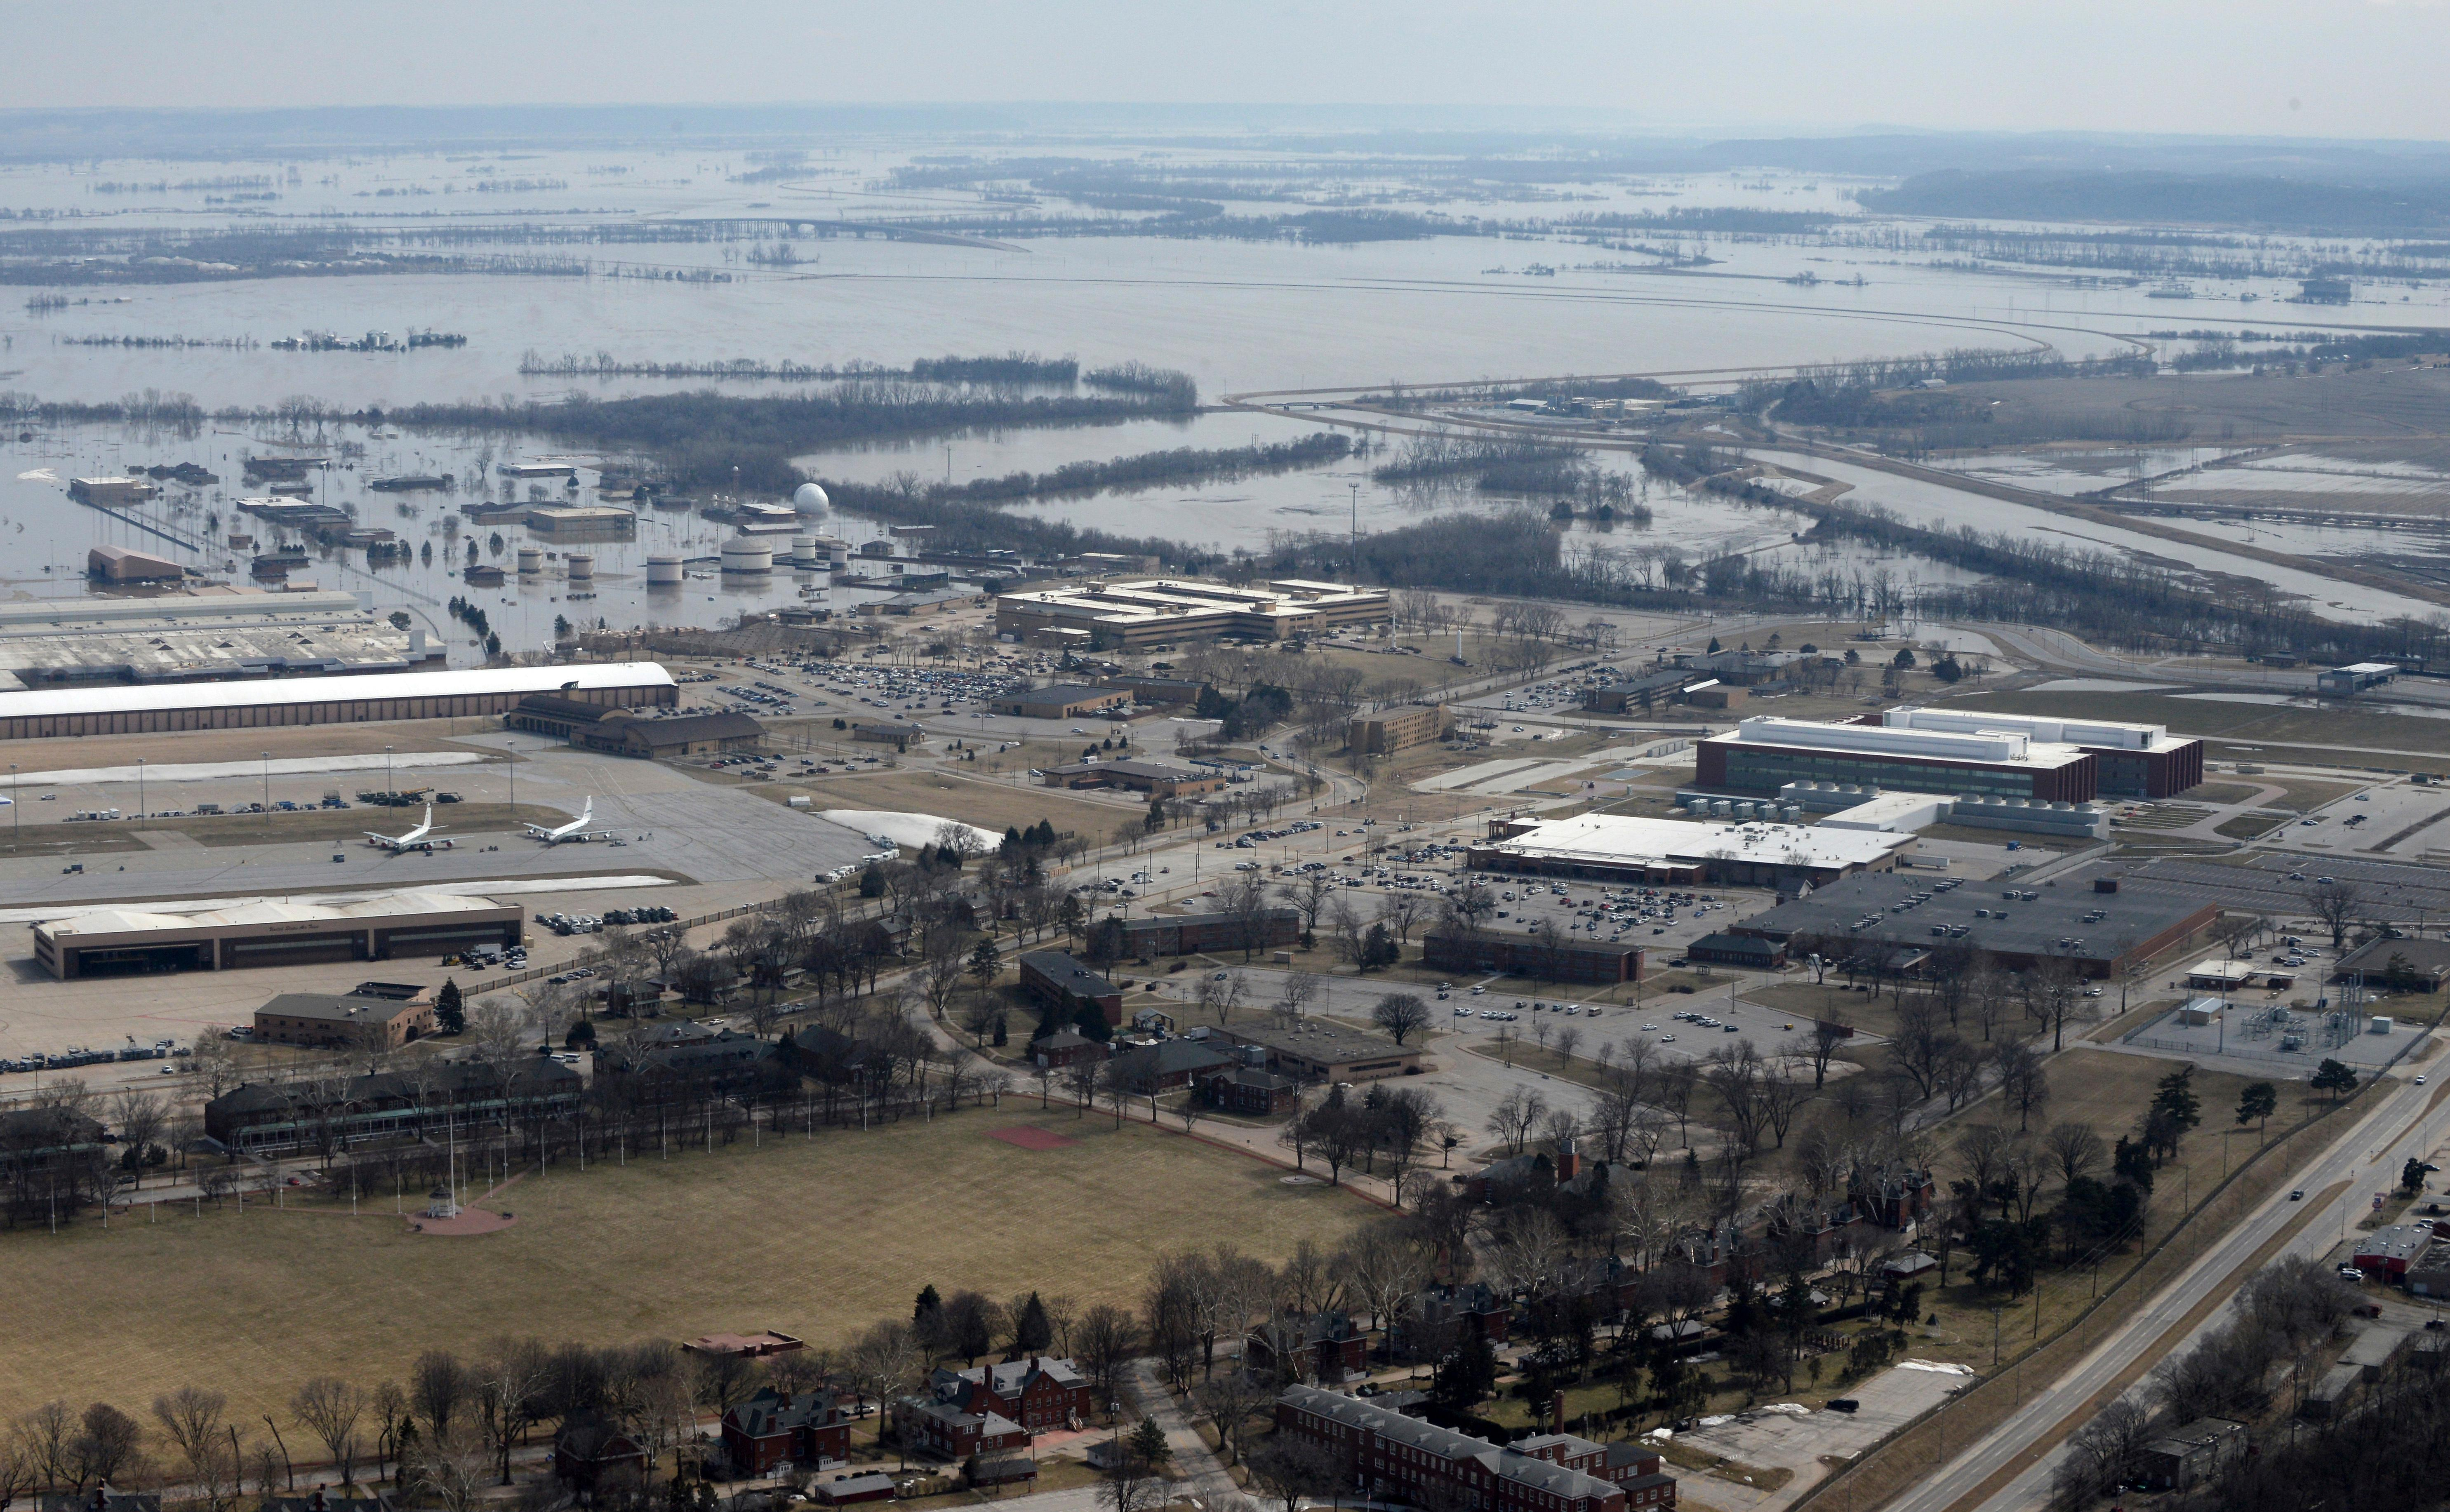 This March 17, 2019 photo released by the U.S. Air Force shows an aerial view of Offutt Air Force Base and the surrounding areas affected by flood waters in Neb.{ } (Tech. Sgt. Rachelle Blake/The U.S. Air Force via AP)